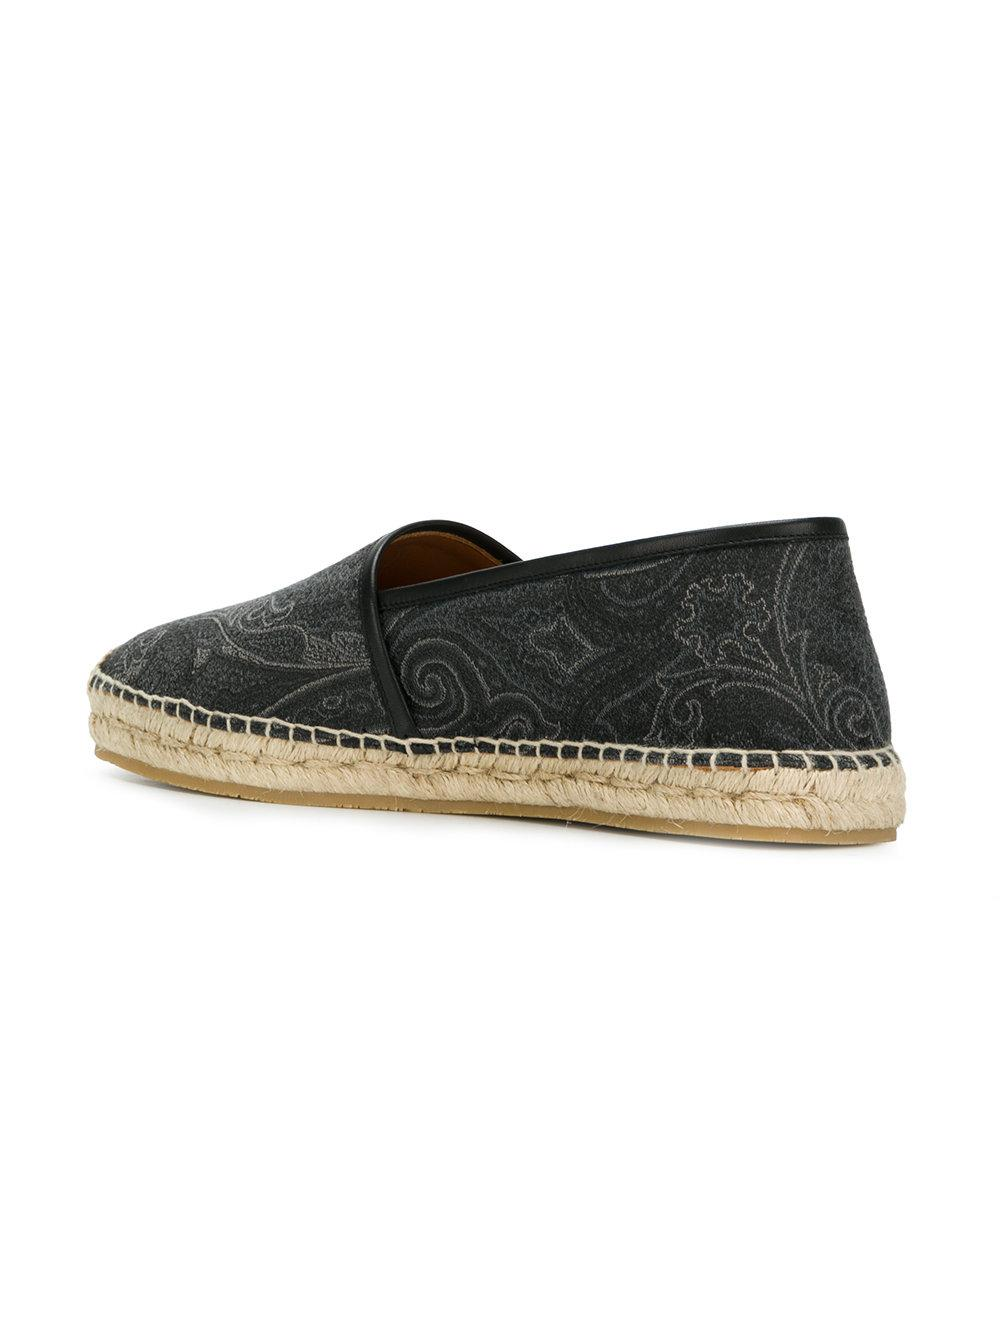 New Online embroidered pattern espadrilles - Grey Etro Free Shipping Shop Supply Cheap Price Comfortable Cheap Online Clearance Store Cheap Online 7yQ6Vmw